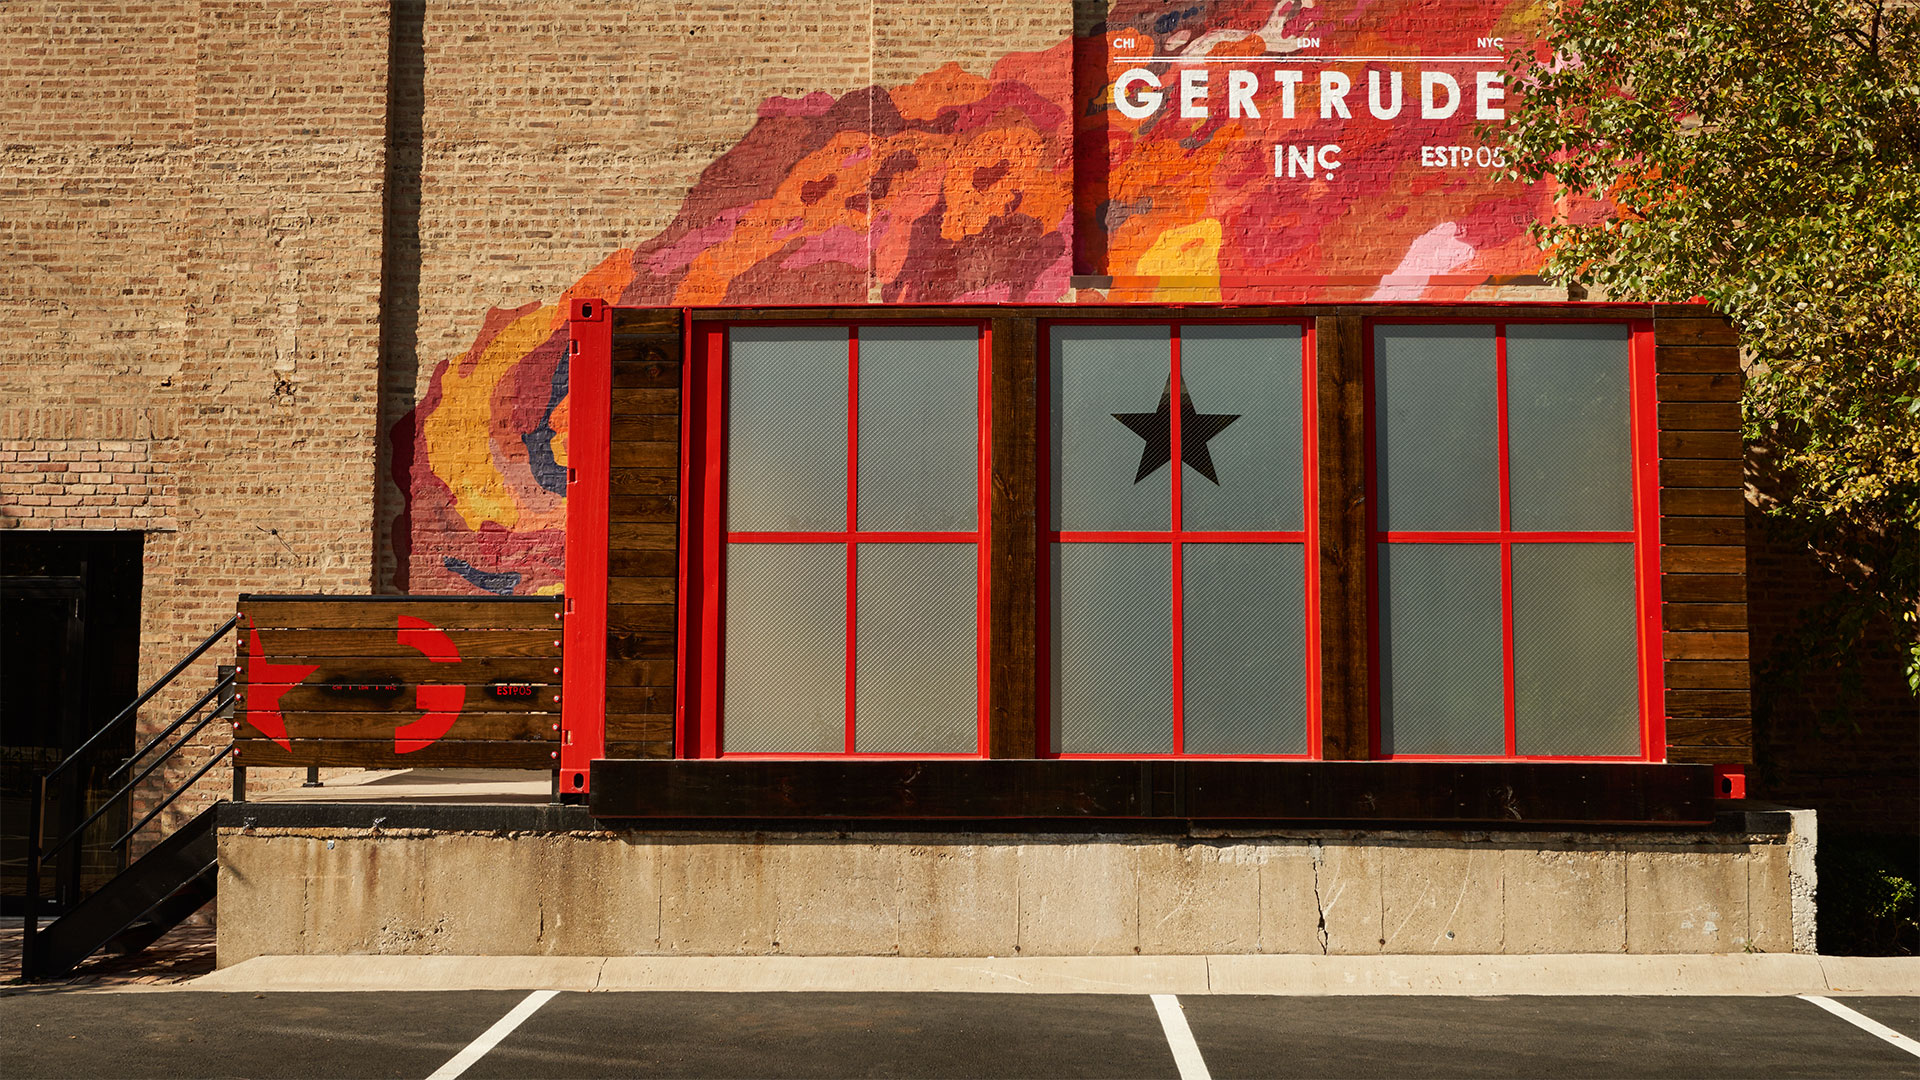 Gertrude, Inc. Agency Custom Designed Red Shipping Container Entrance and Branding 02